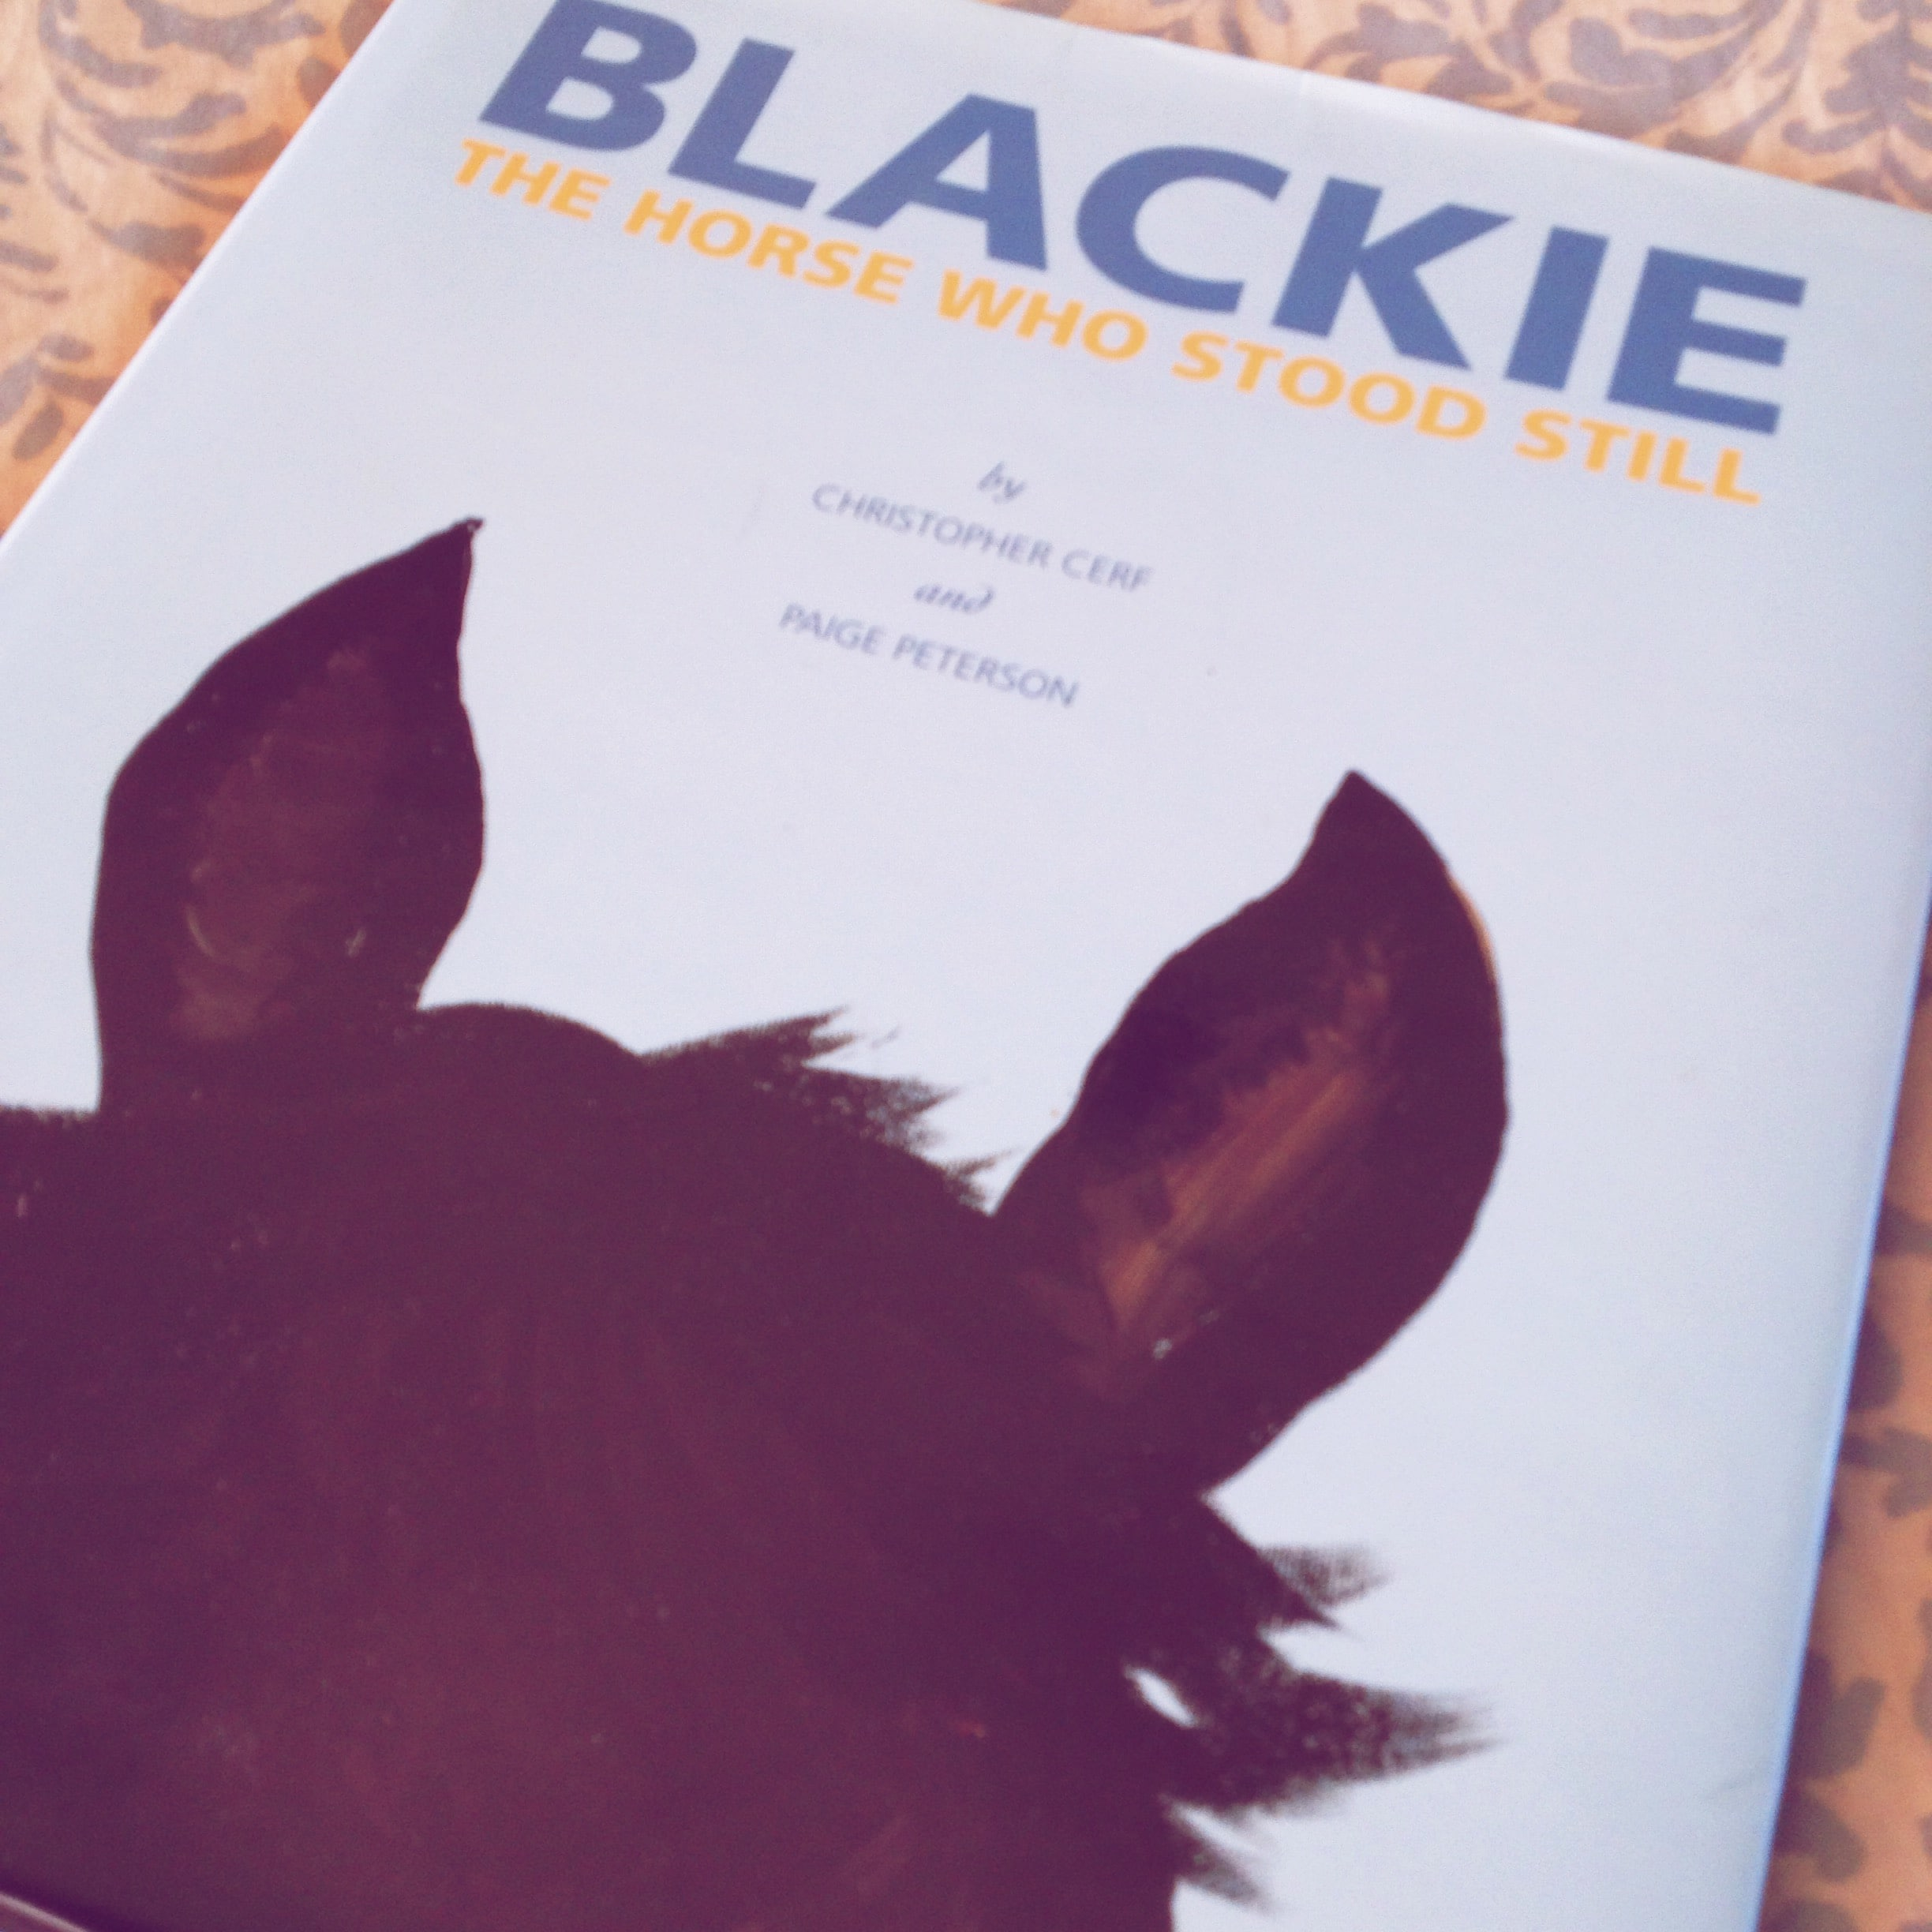 Blackie The Horse Who Stood Still {Book Review} ItsaWahmLife.com